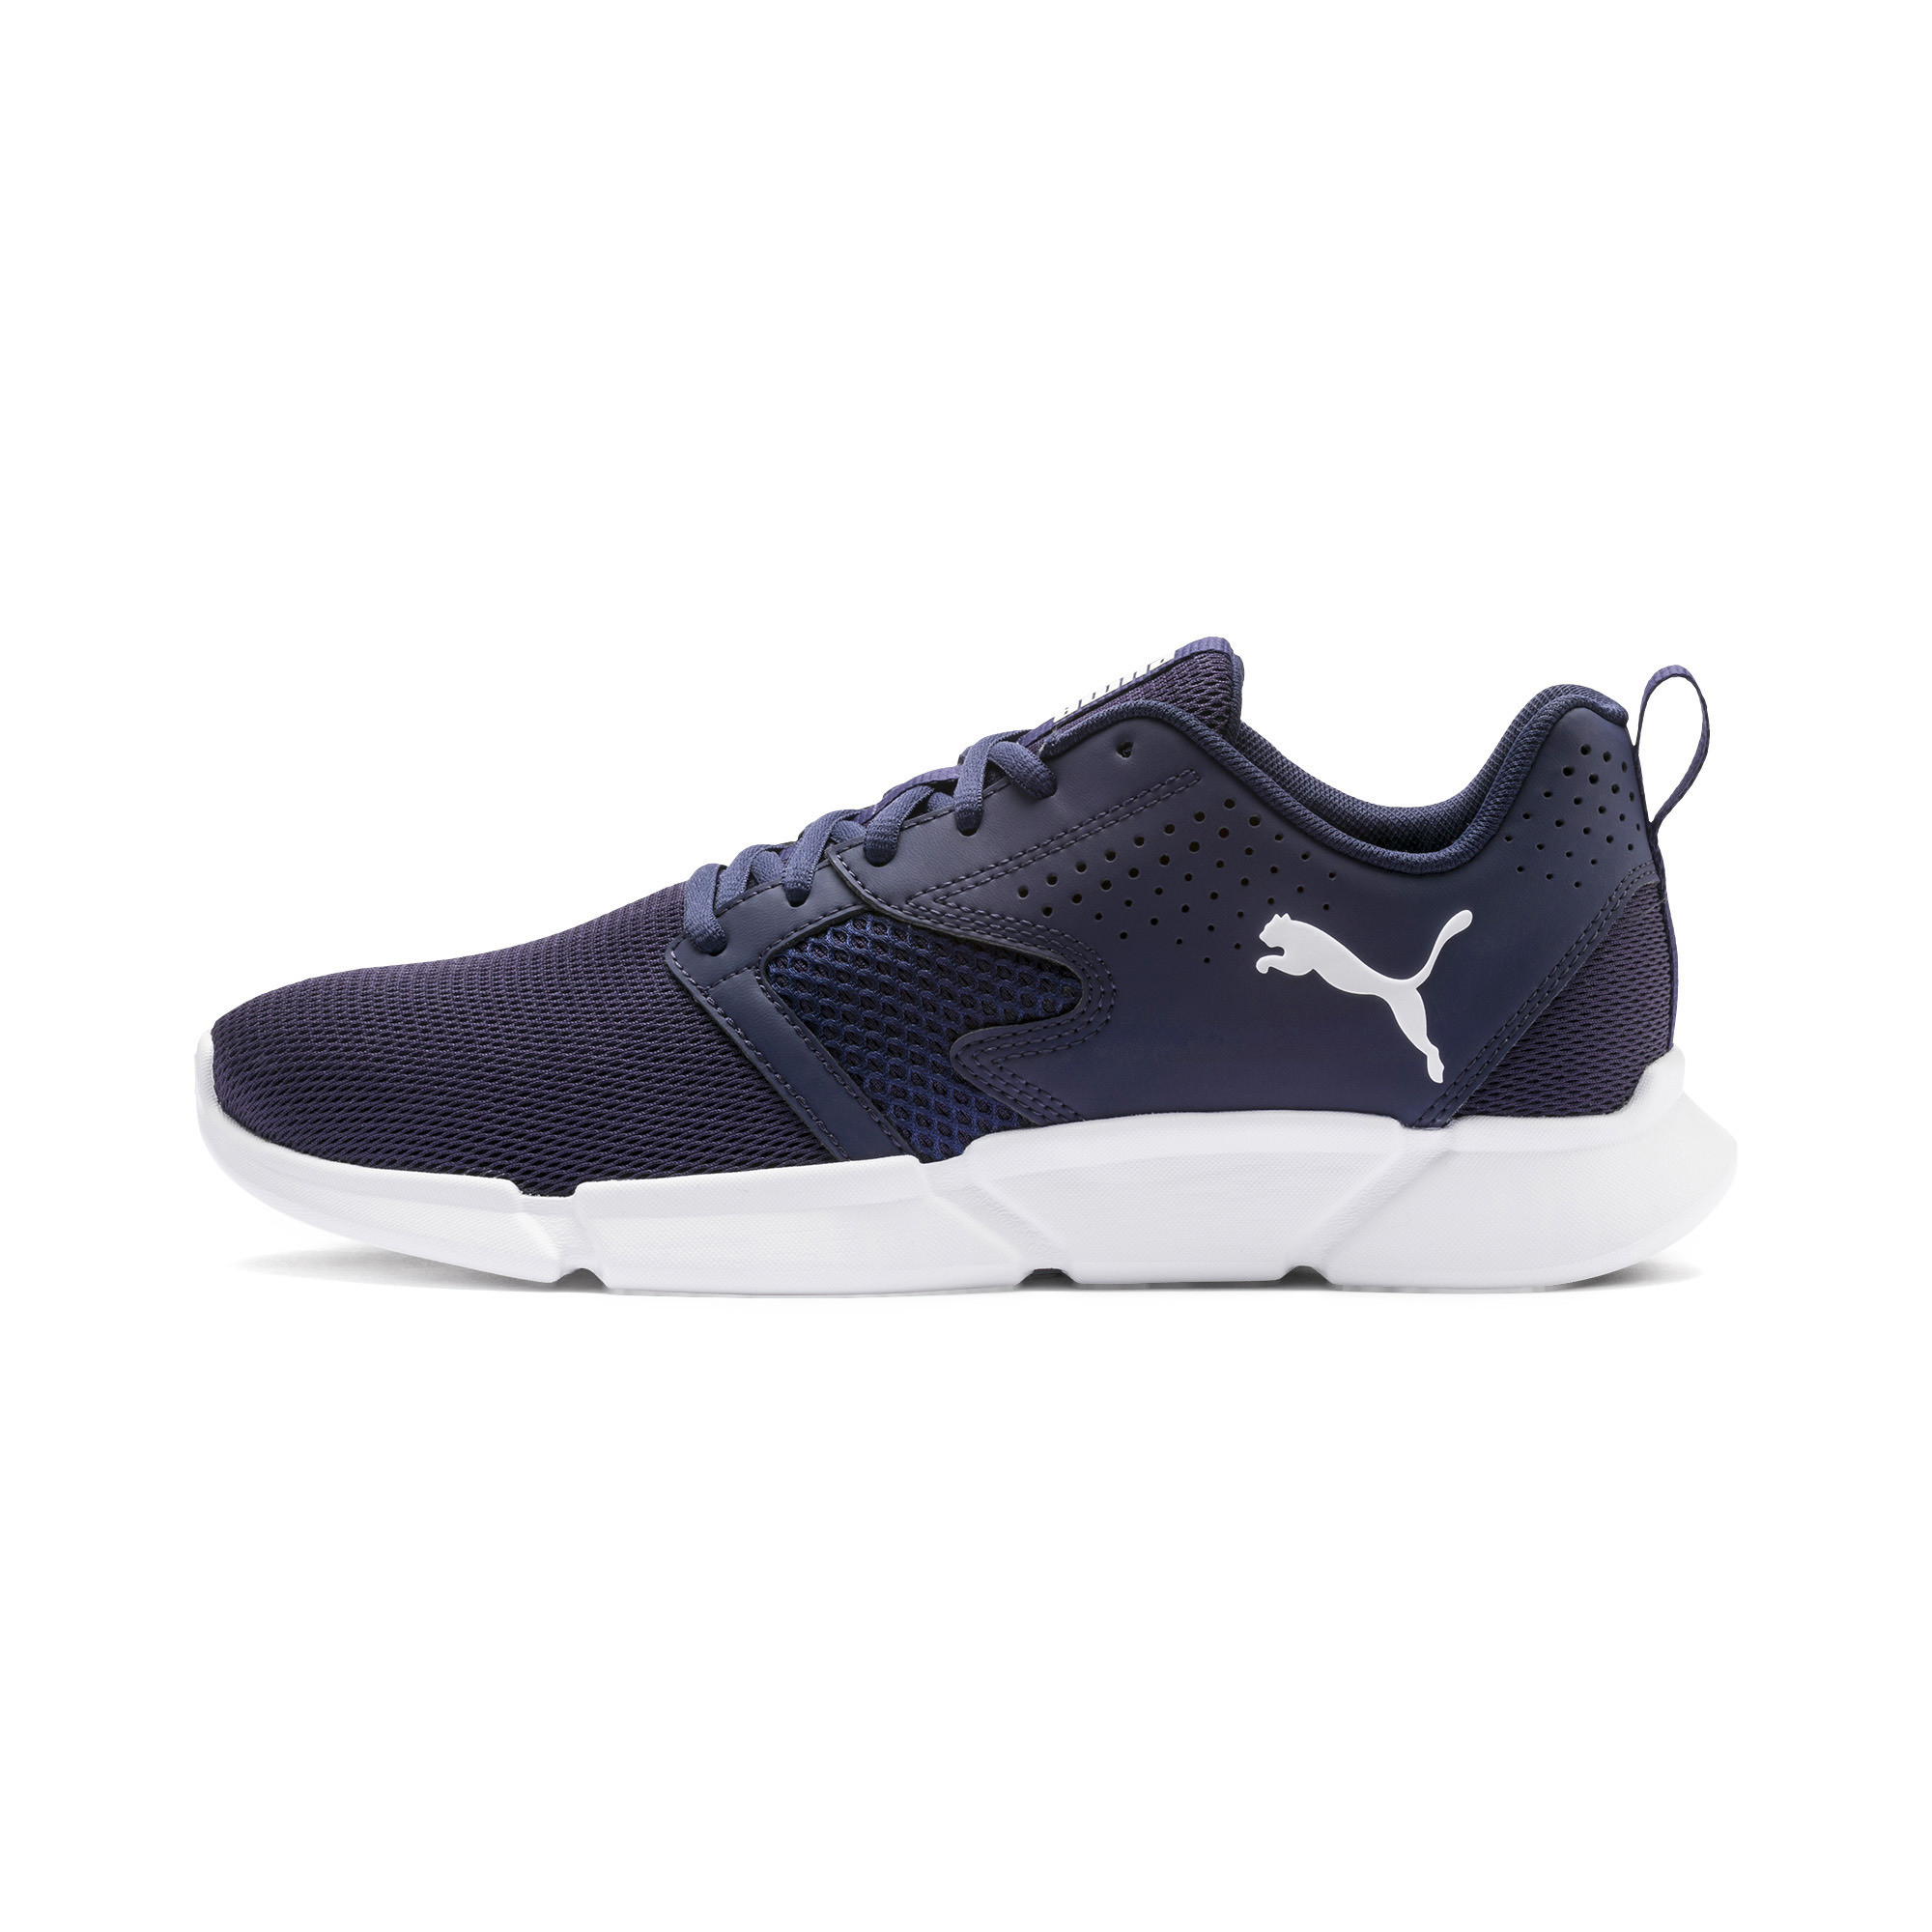 PUMA-INTERFLEX-Modern-Men-039-s-Sneakers-Unisex-Shoe-Running thumbnail 4